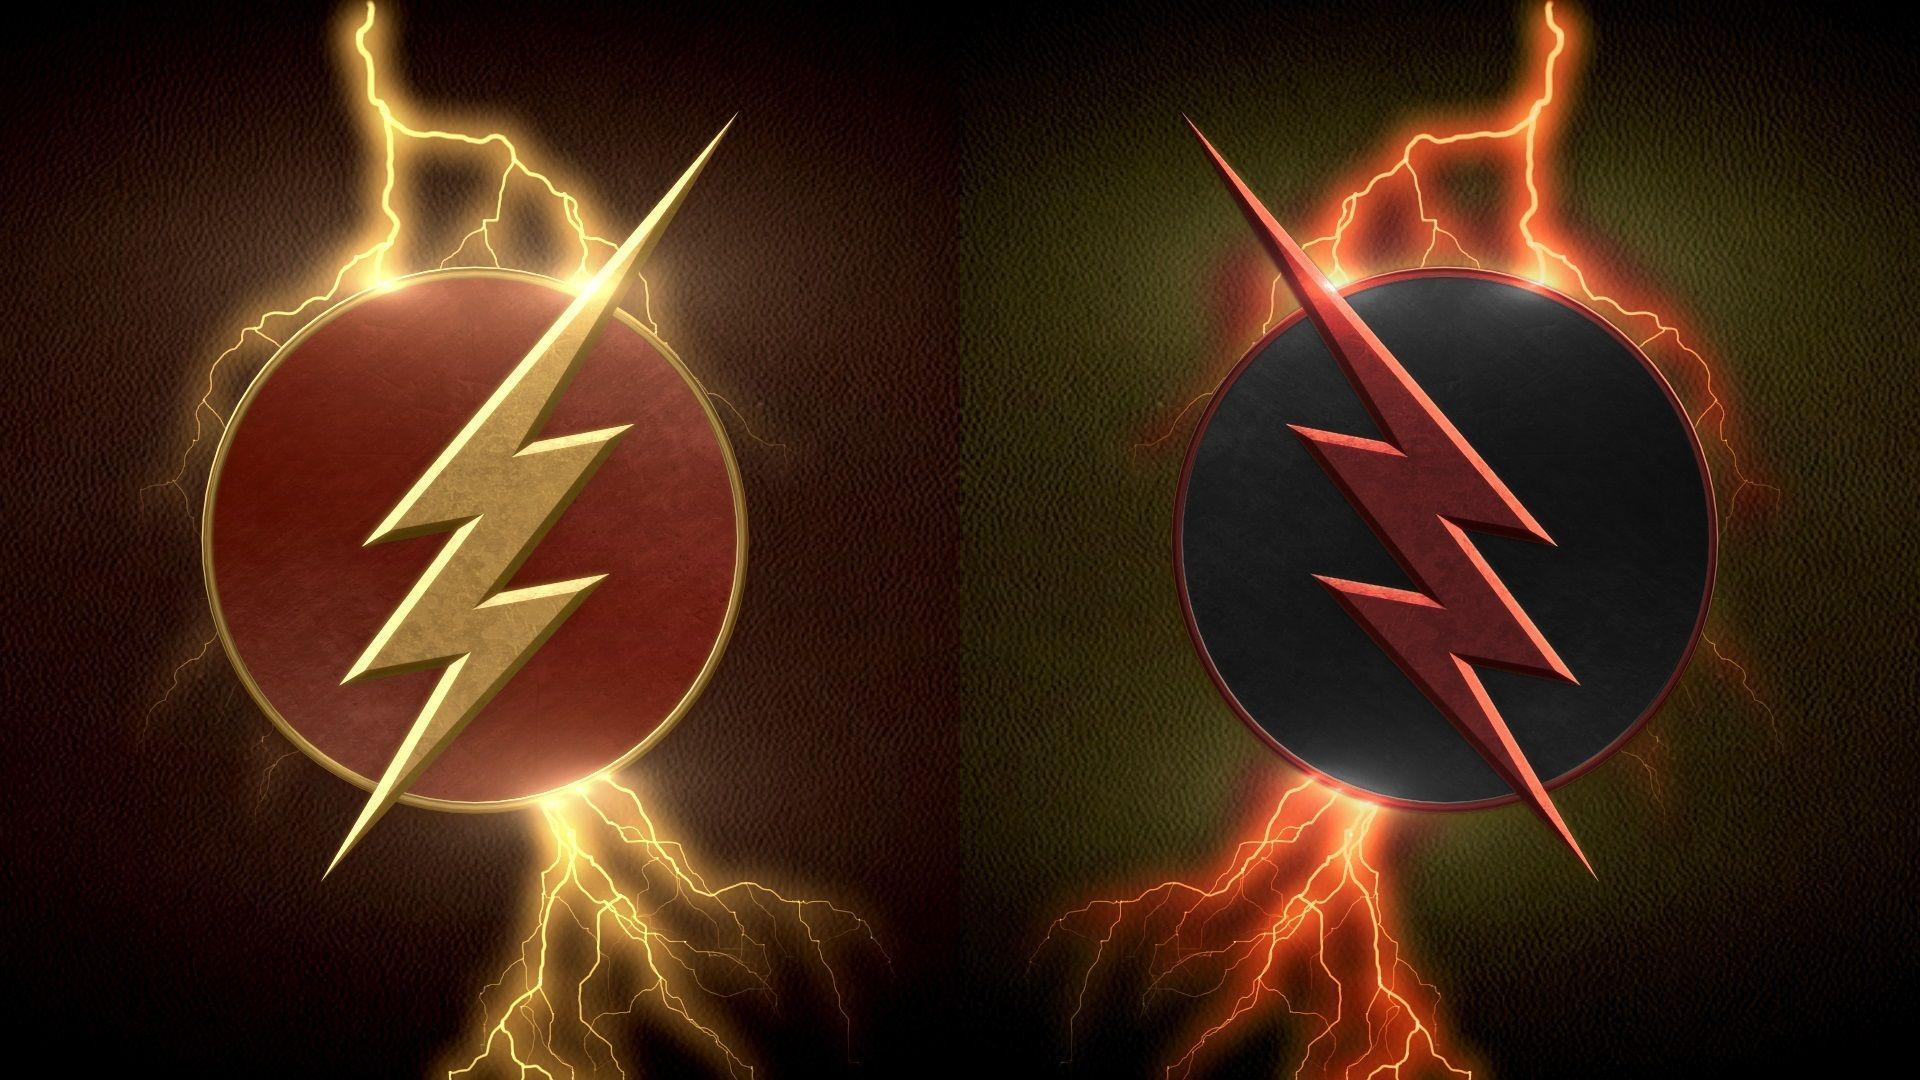 Here's a couple Flash wallpapers I made.